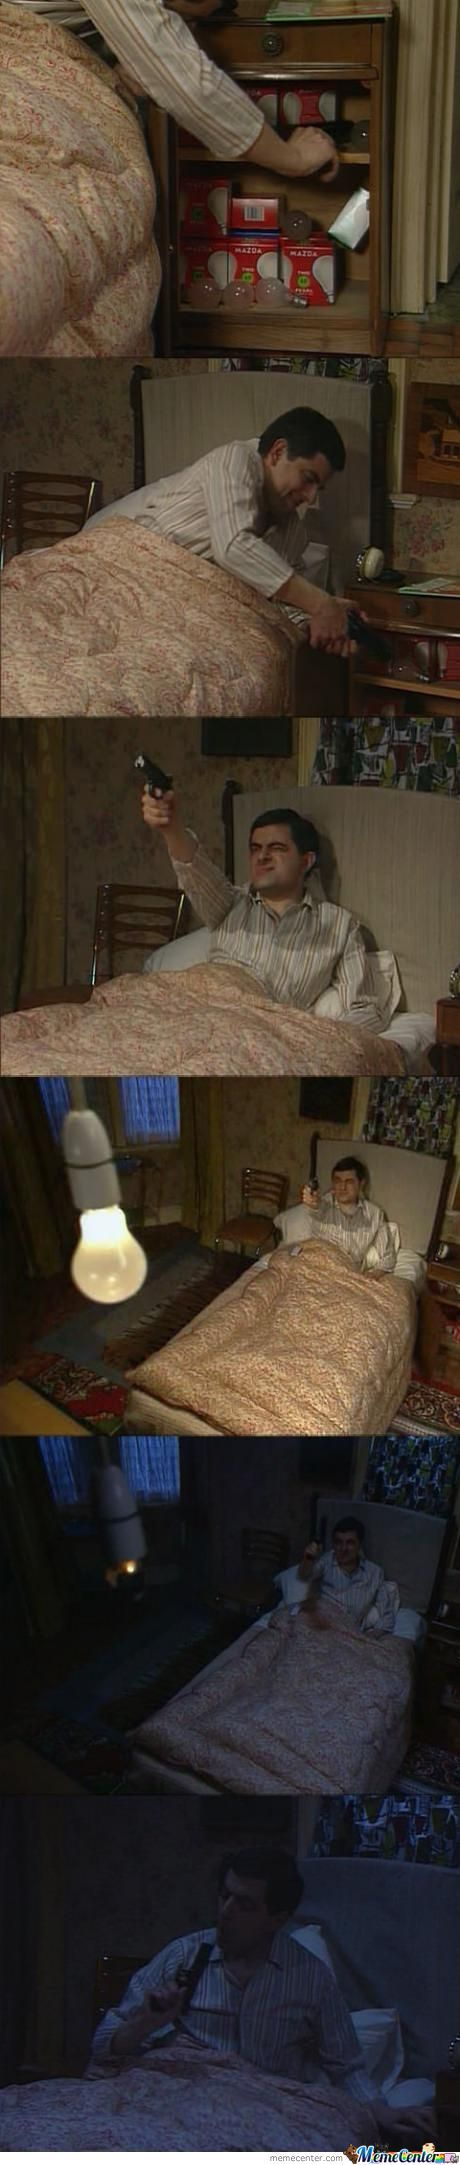 Turning Off Light Like A Boss